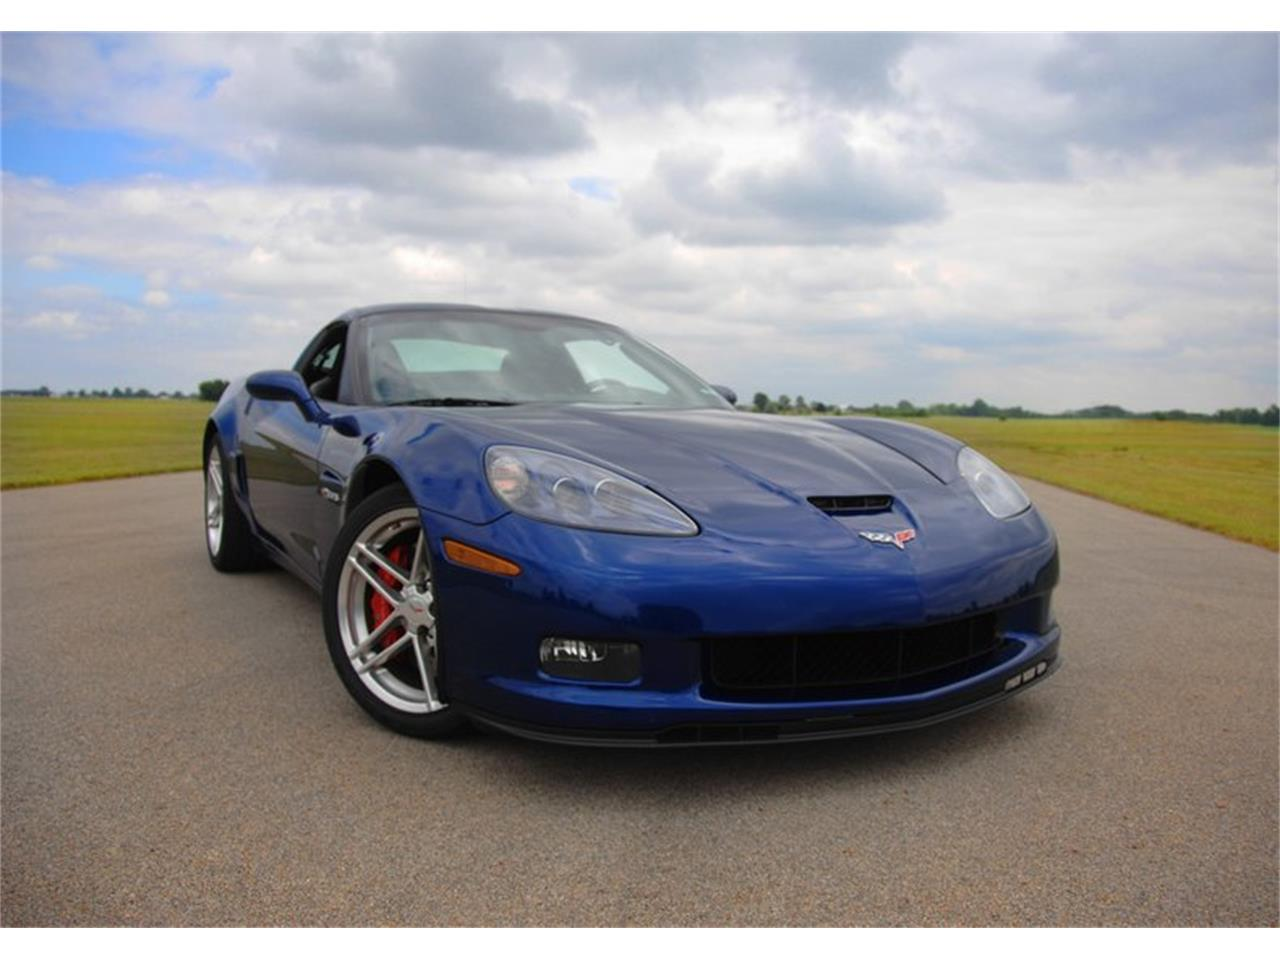 2005 Chevrolet Corvette (CC-1418045) for sale in Wallingford, Connecticut